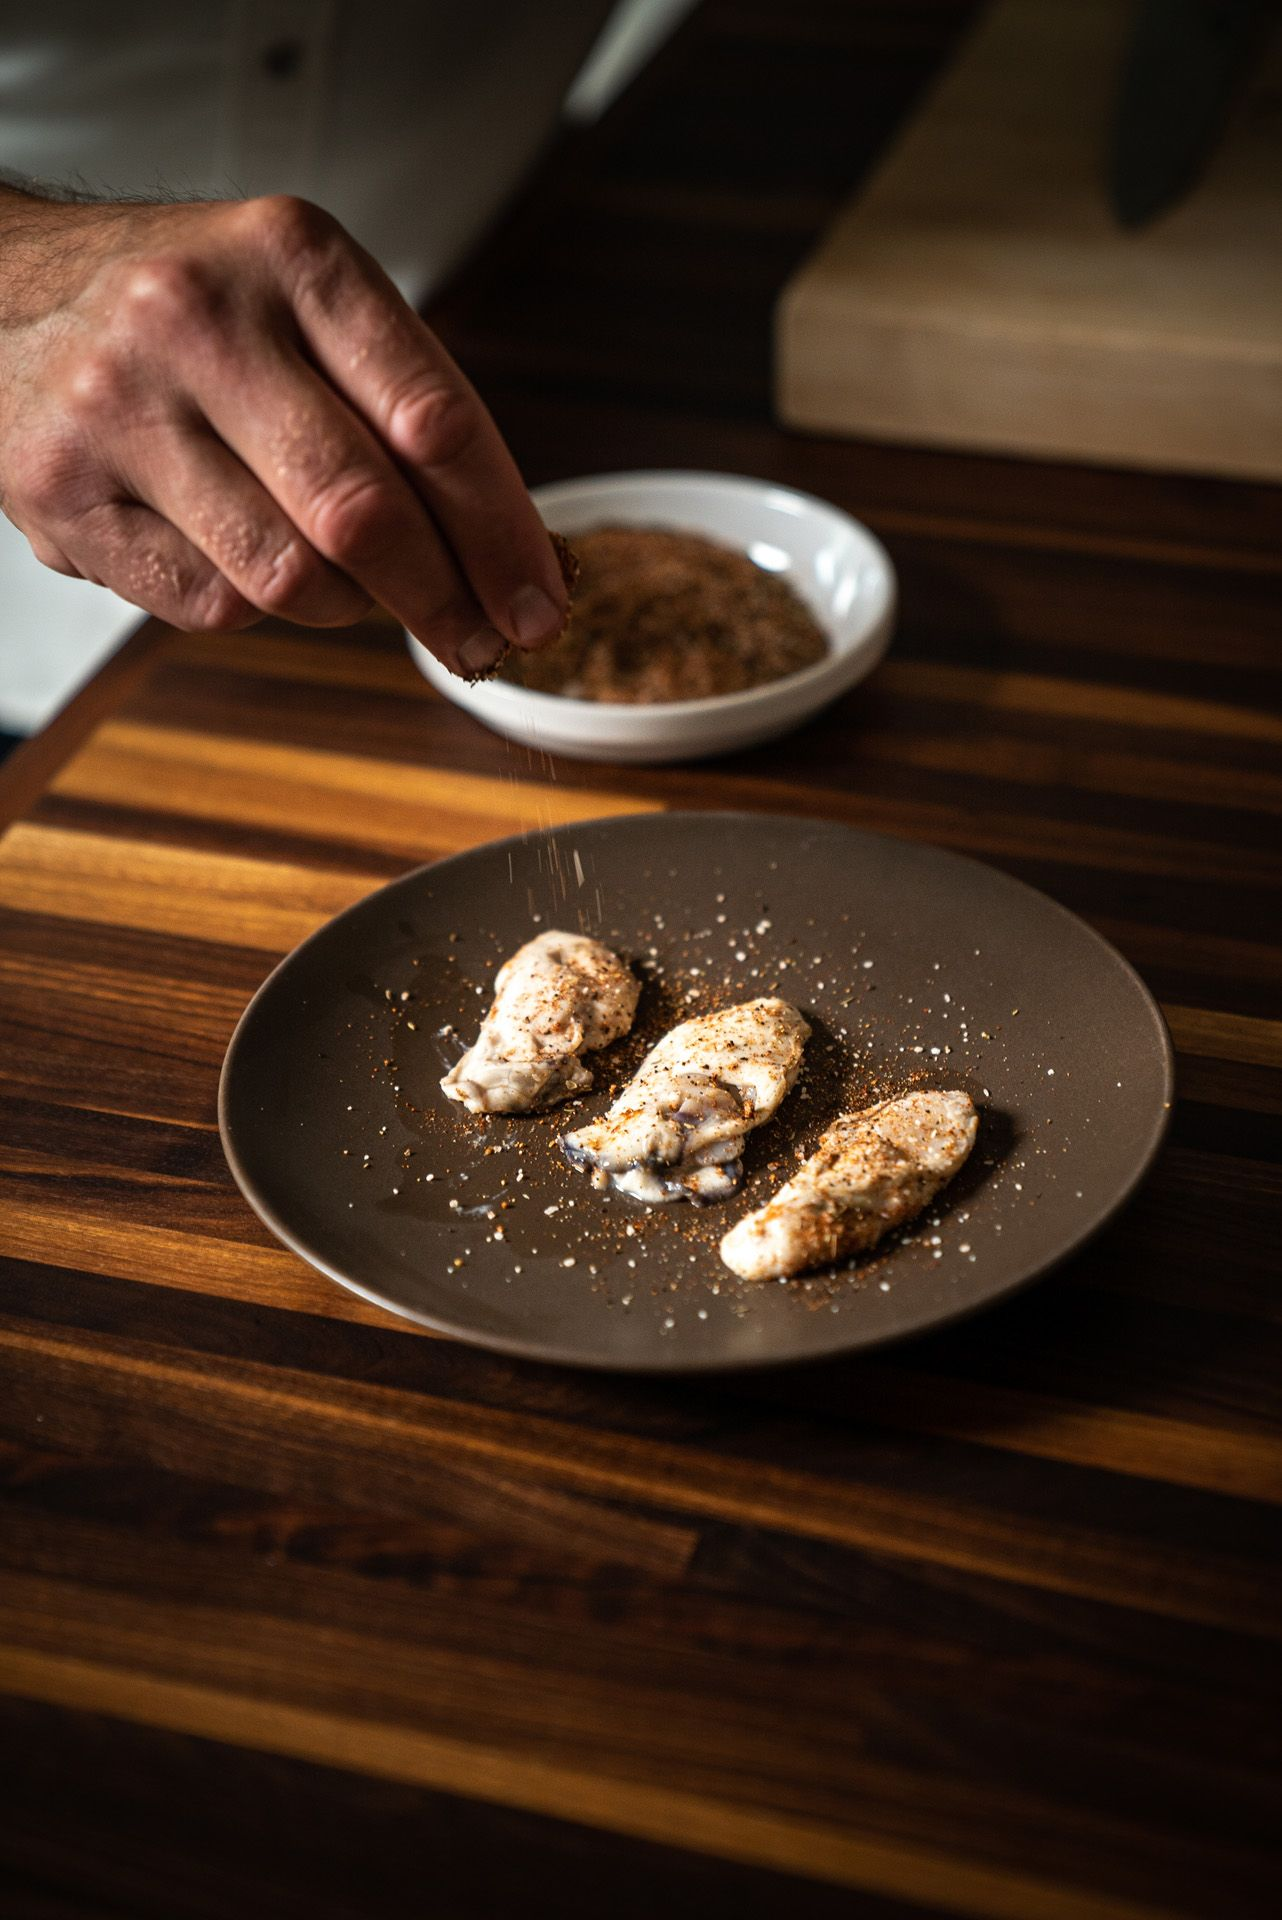 chef Michael Allemeier sprinkling spices over chicken wings by Bruno Florin for Van Houtte 100th anniversary